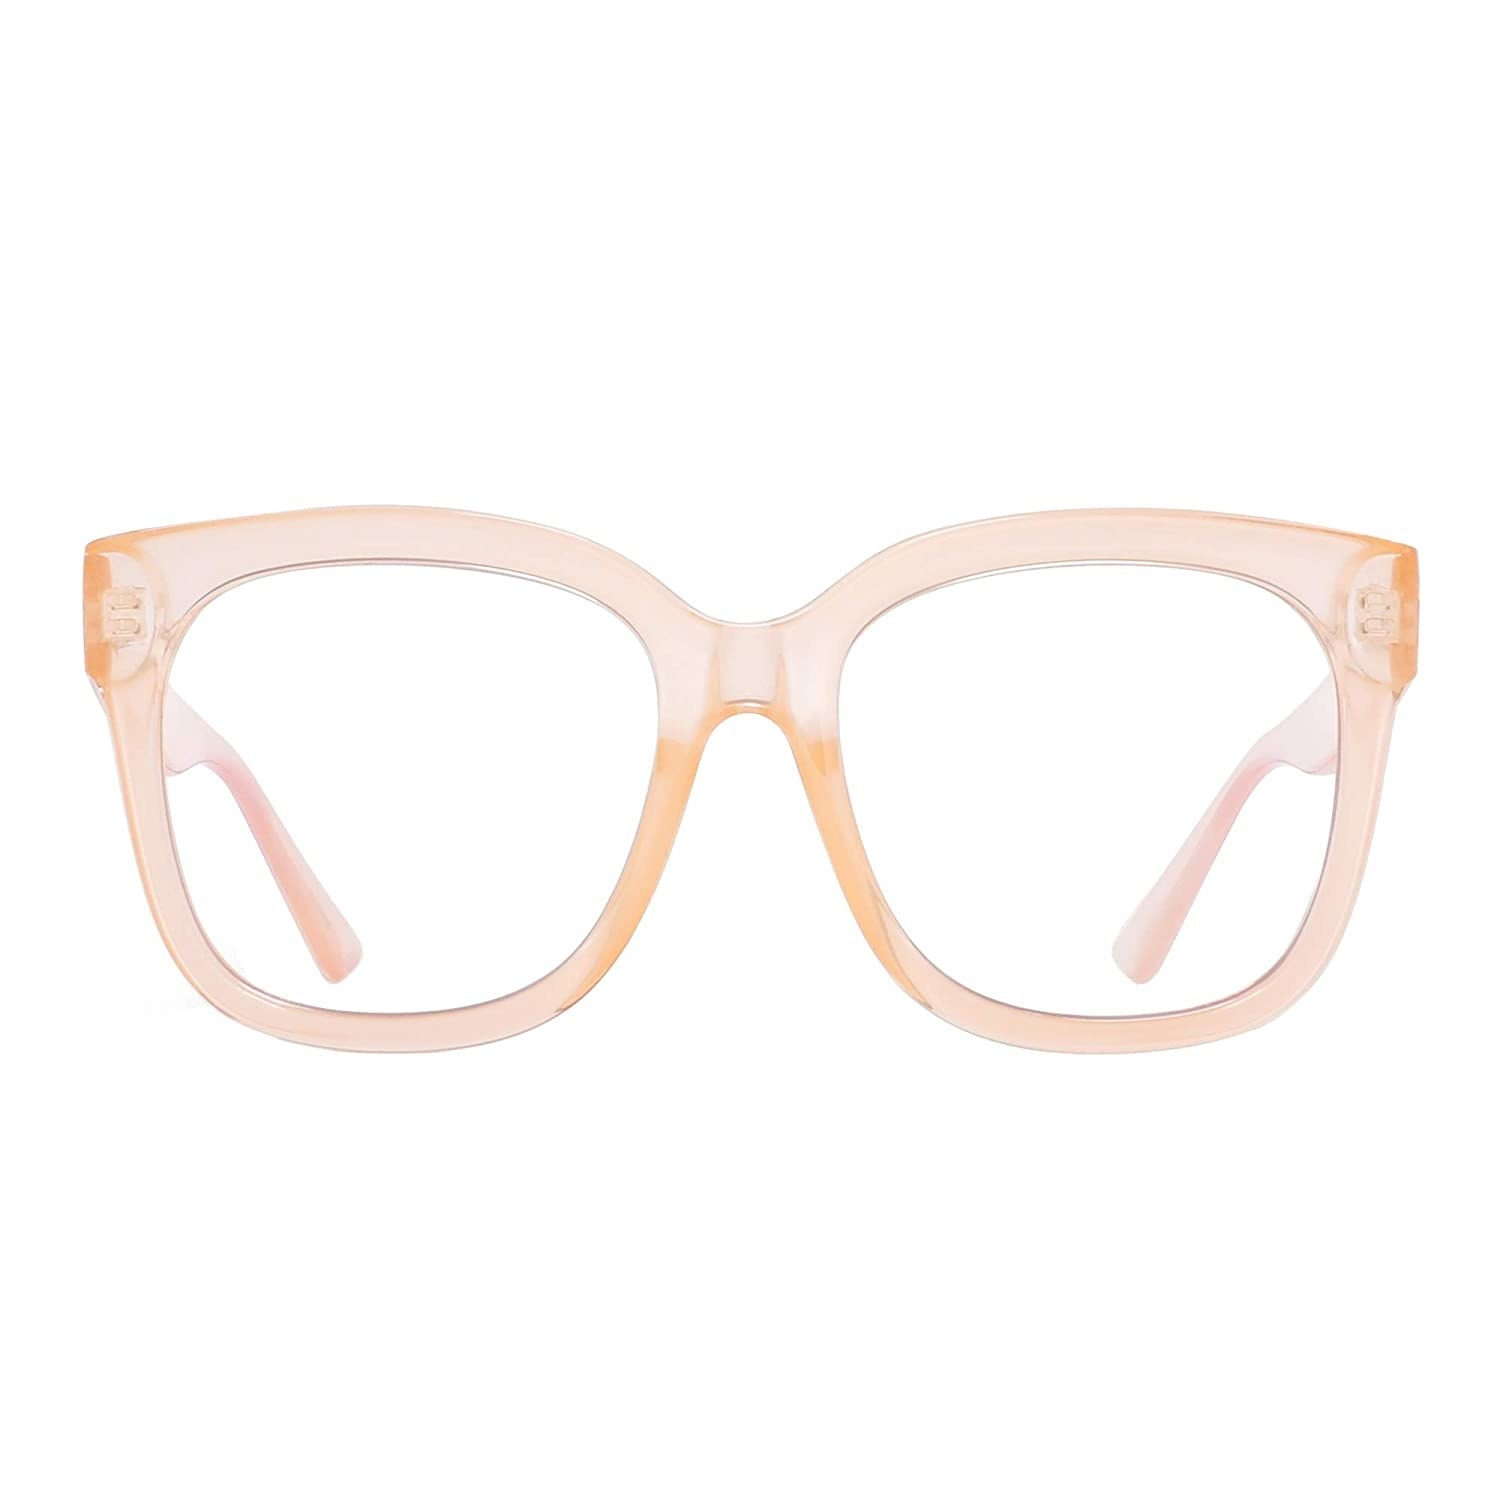 A pair of glasses with a transparent peach frame.